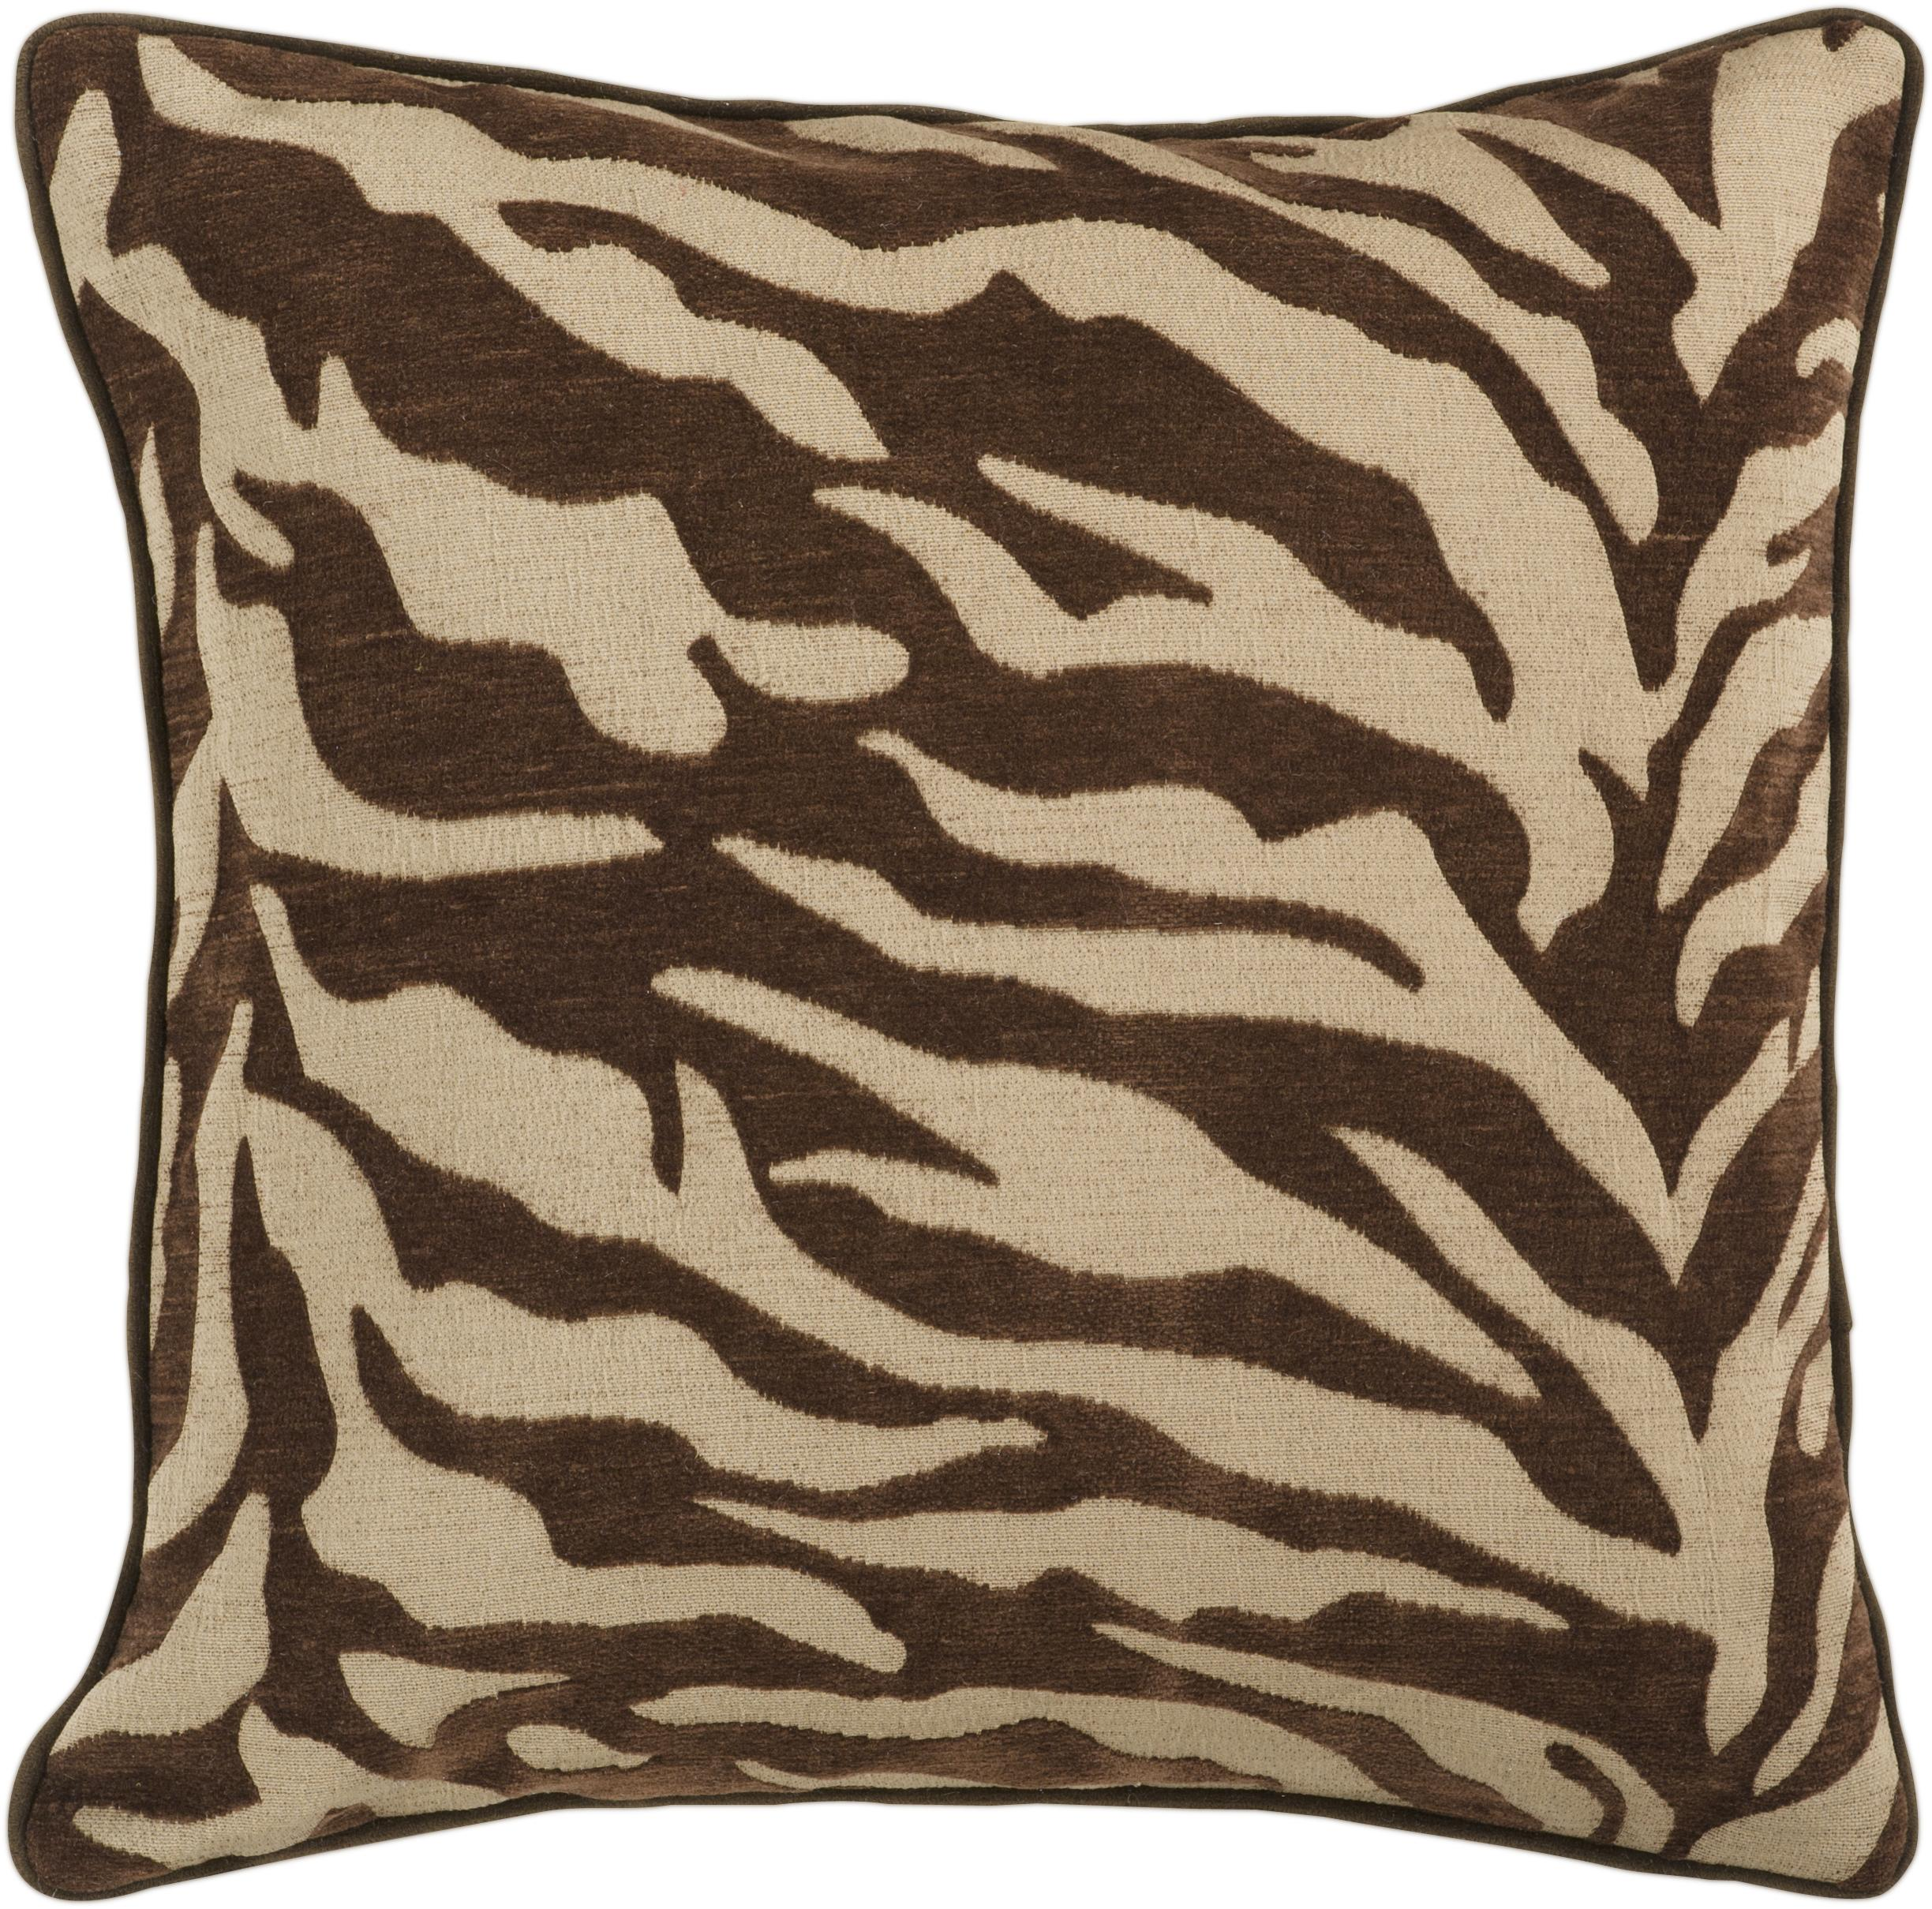 "Surya Rugs Pillows 18"" x 18"" Pillow - Item Number: JS033-1818P"